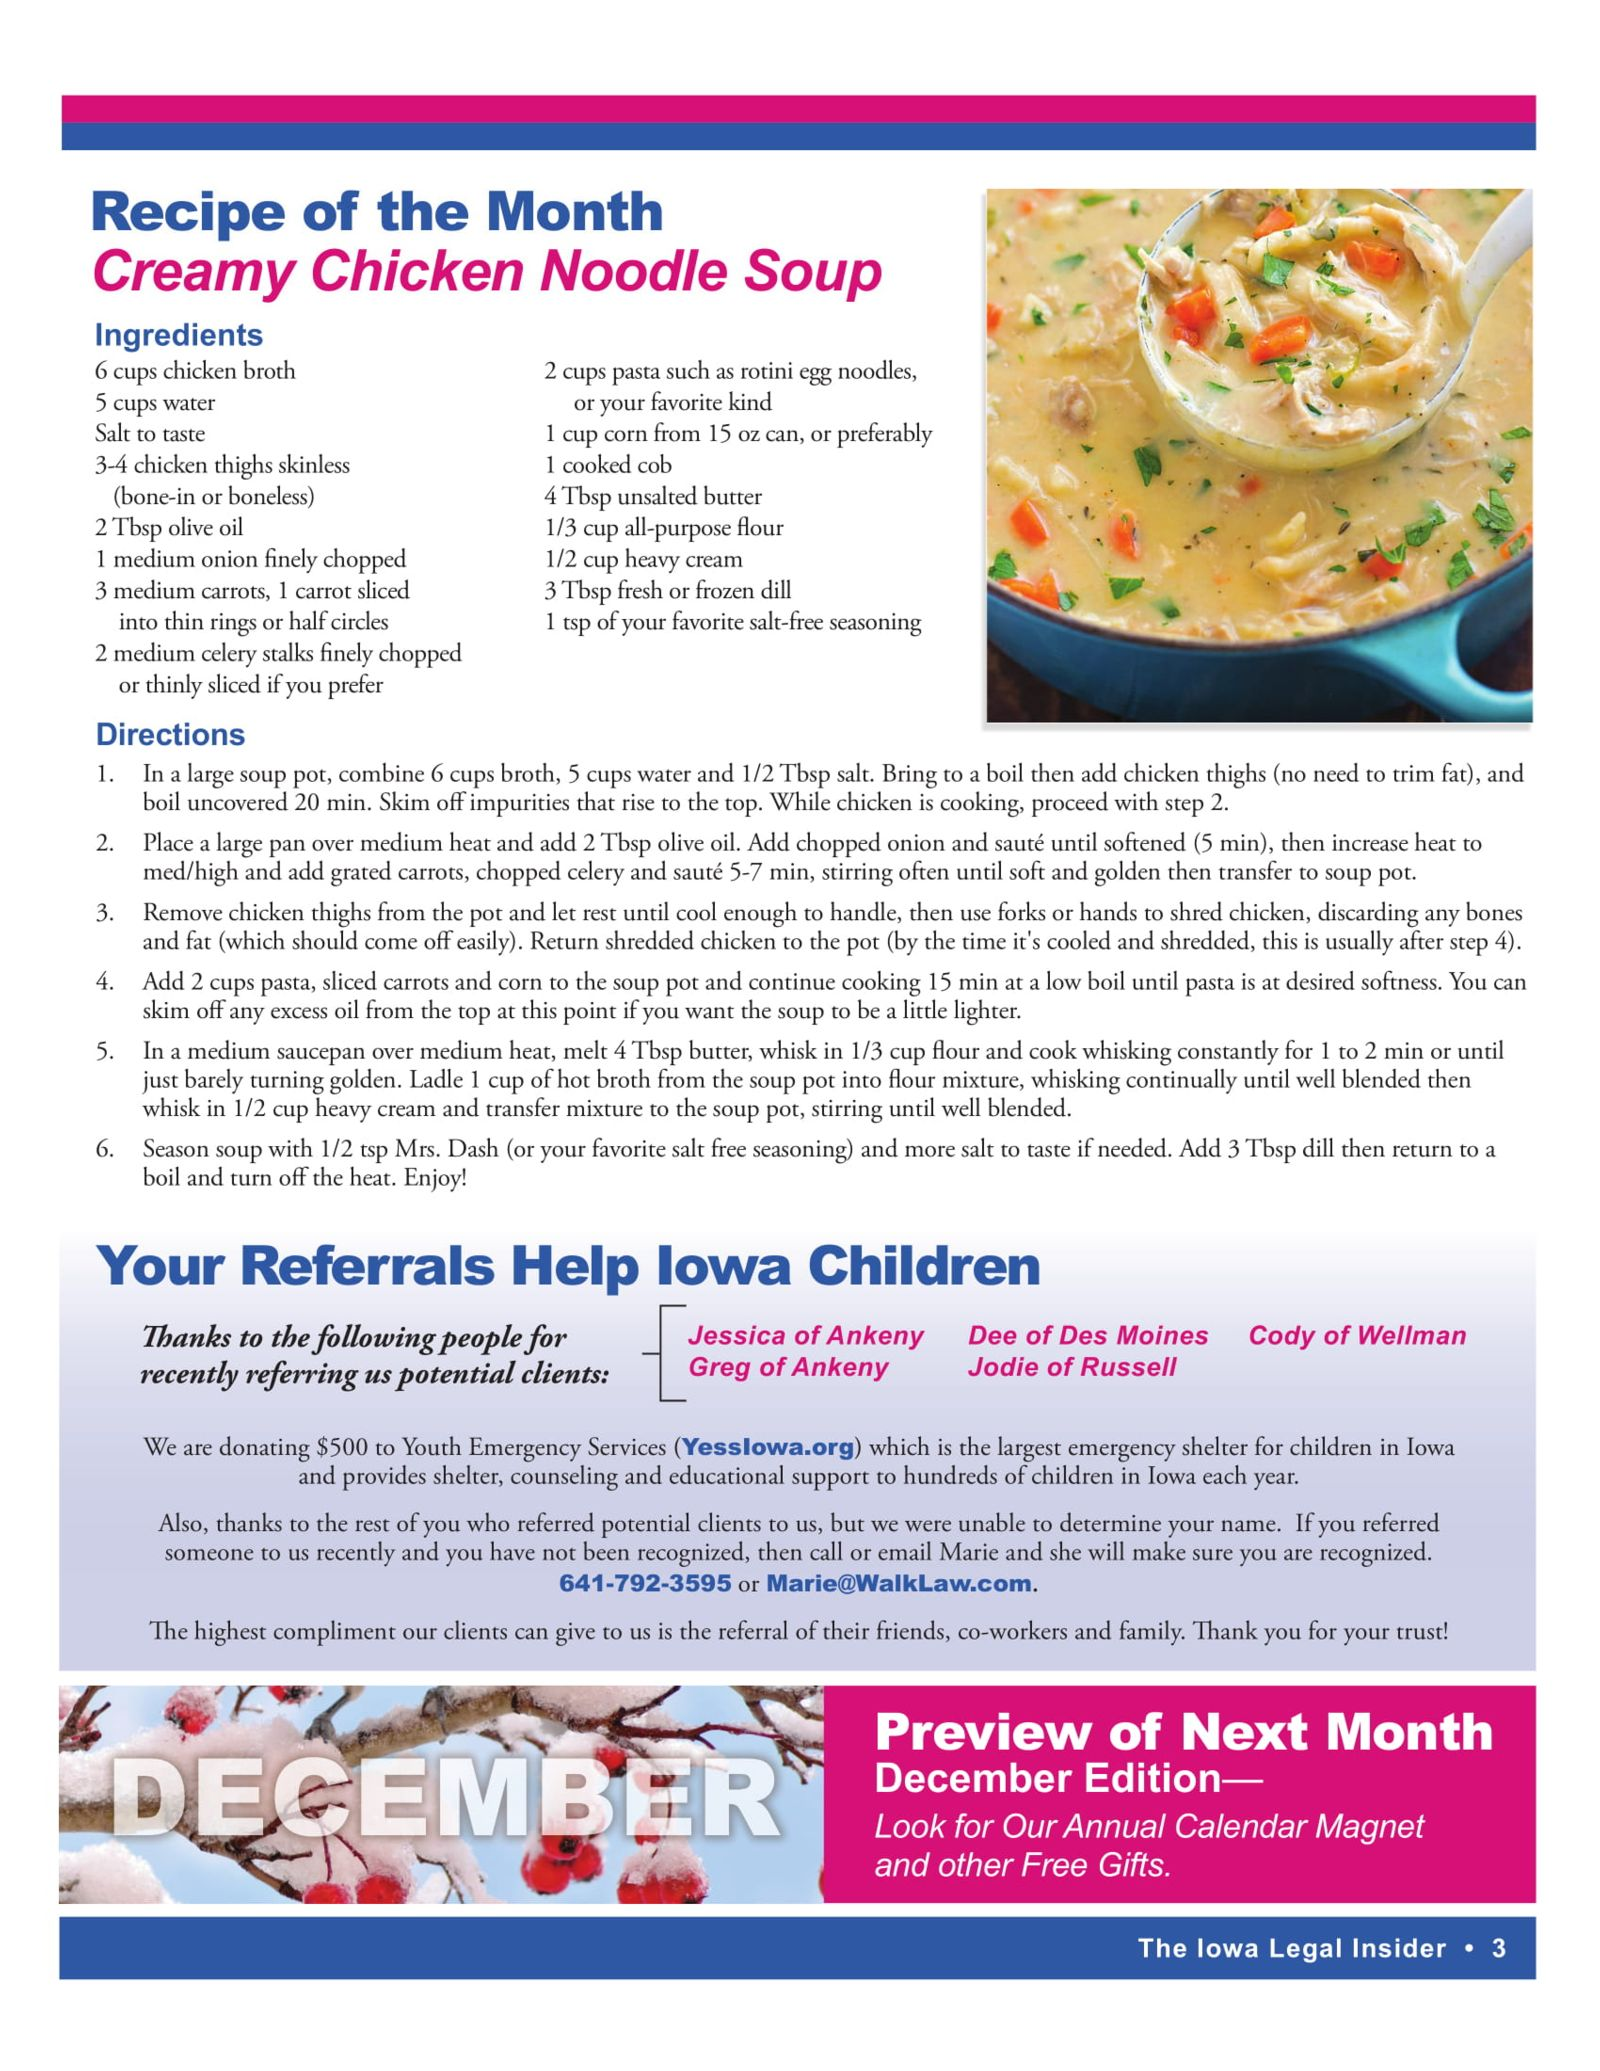 Creamy Chicken Noodle Soup Recipe Iowa Legal Insider